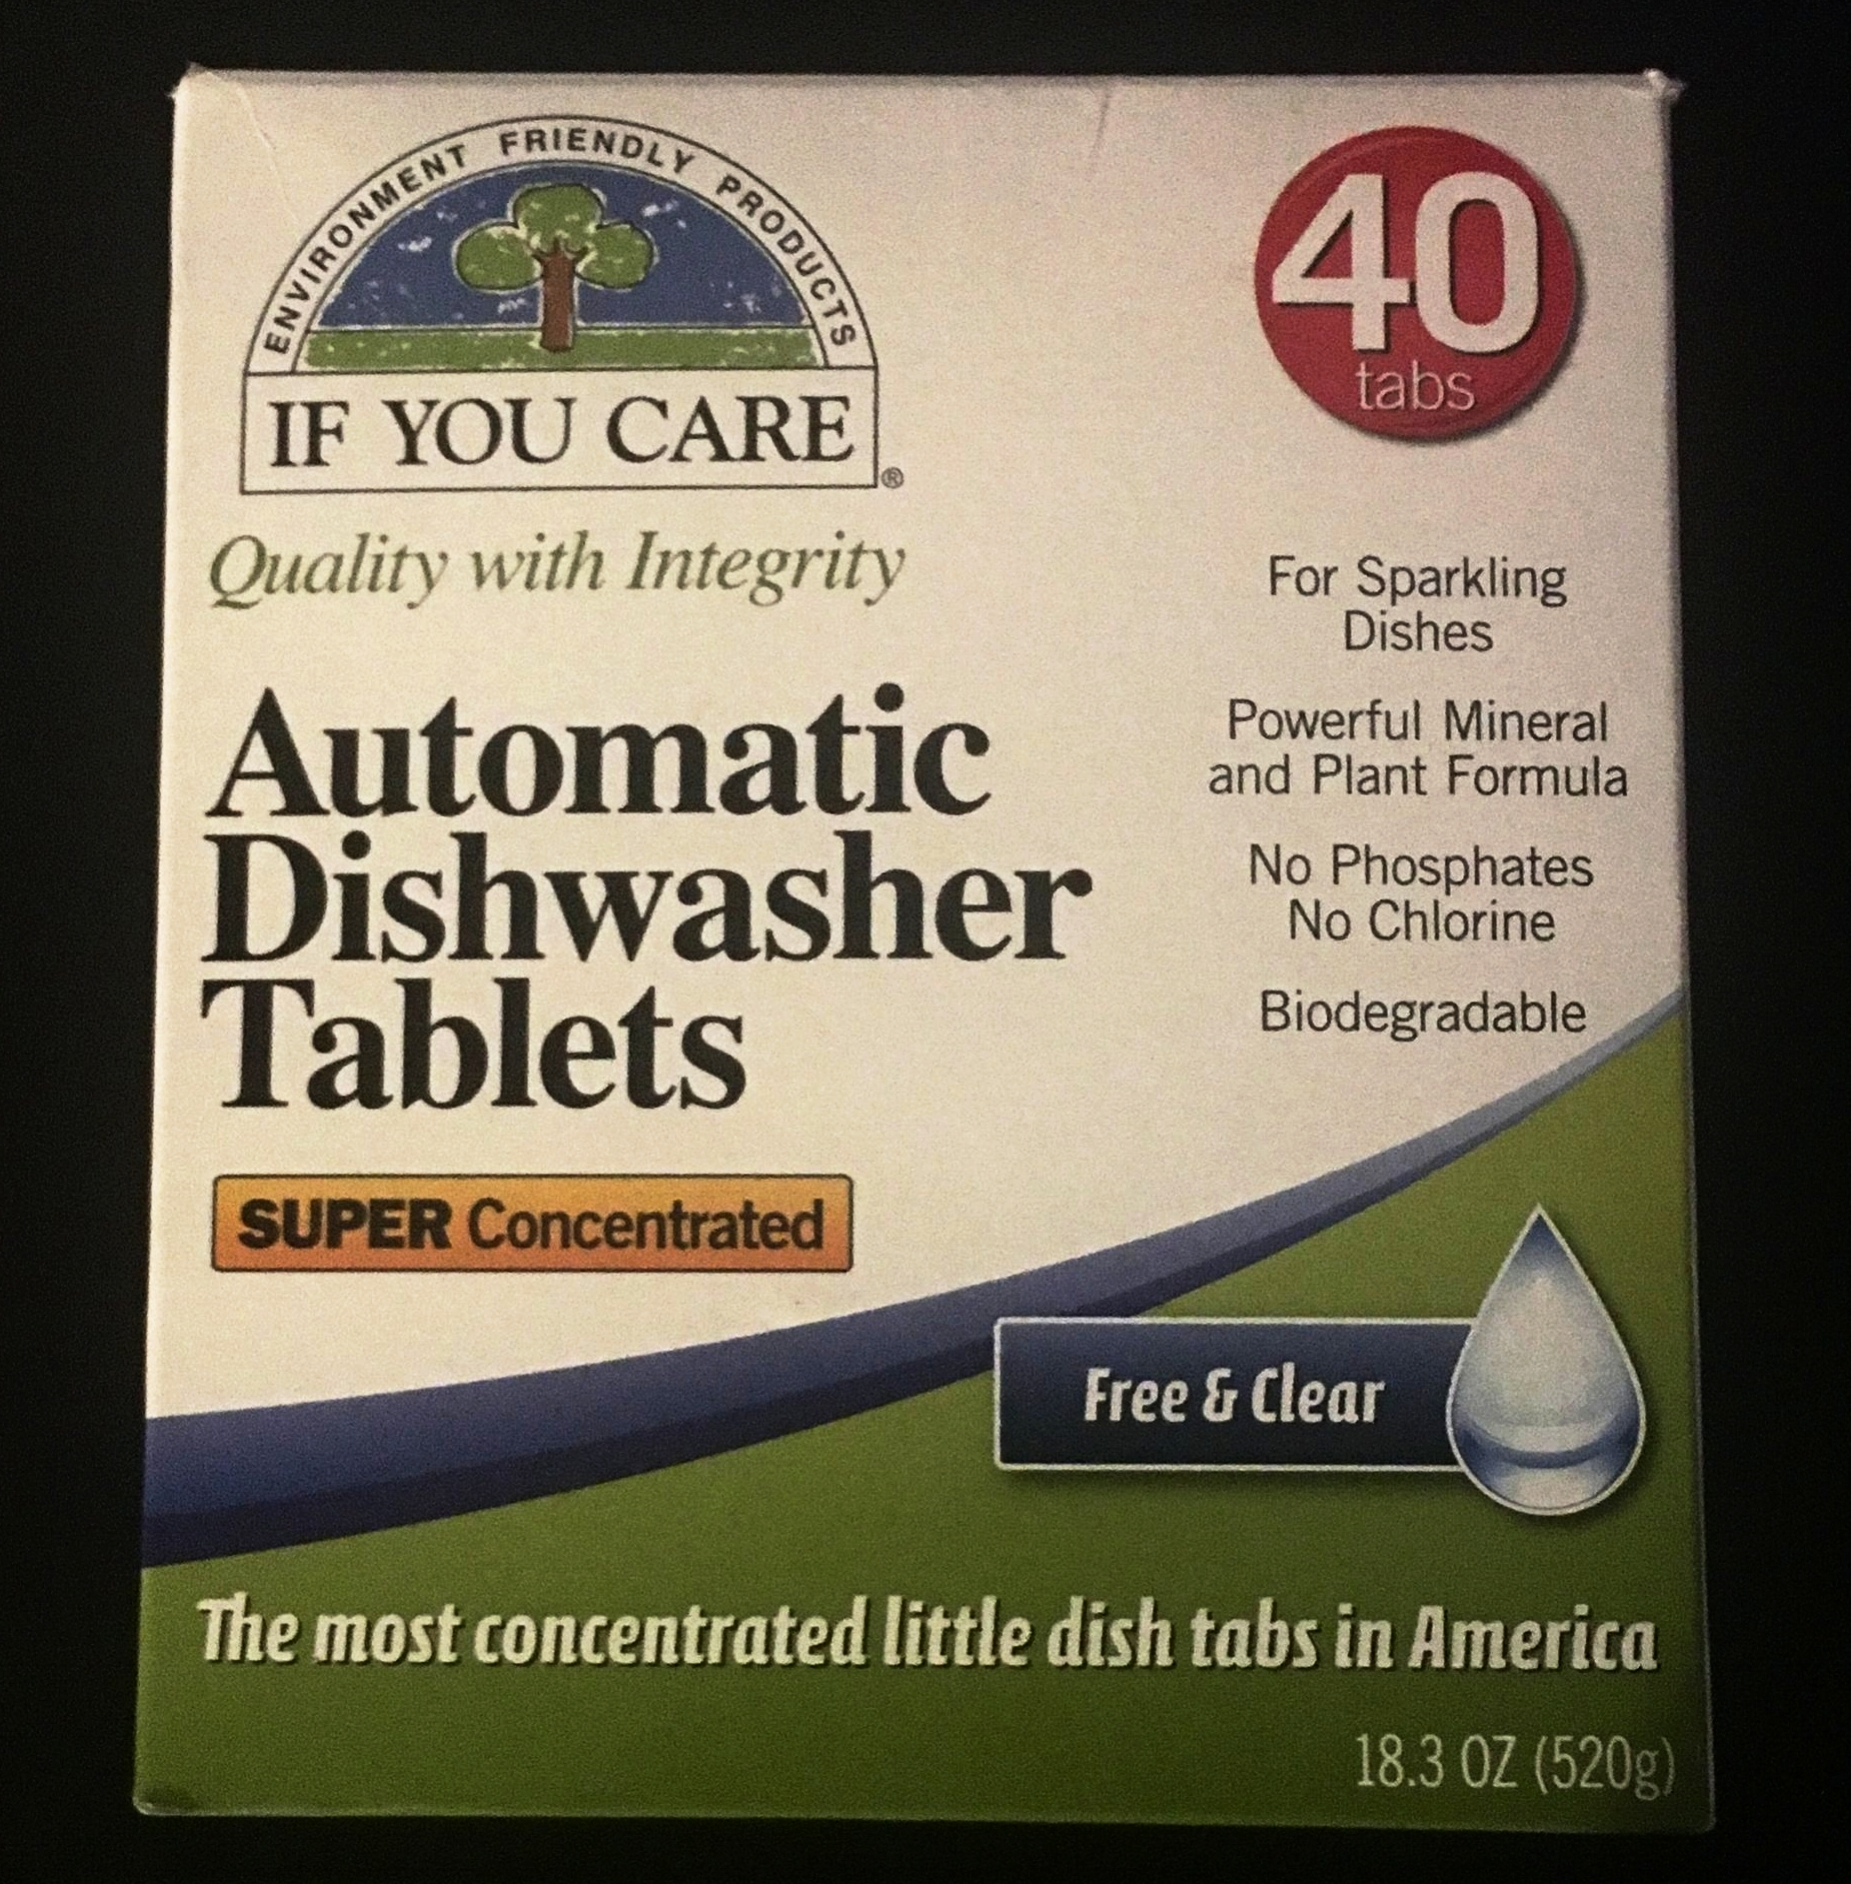 If You Care Automatic Dishwasher Tablets -